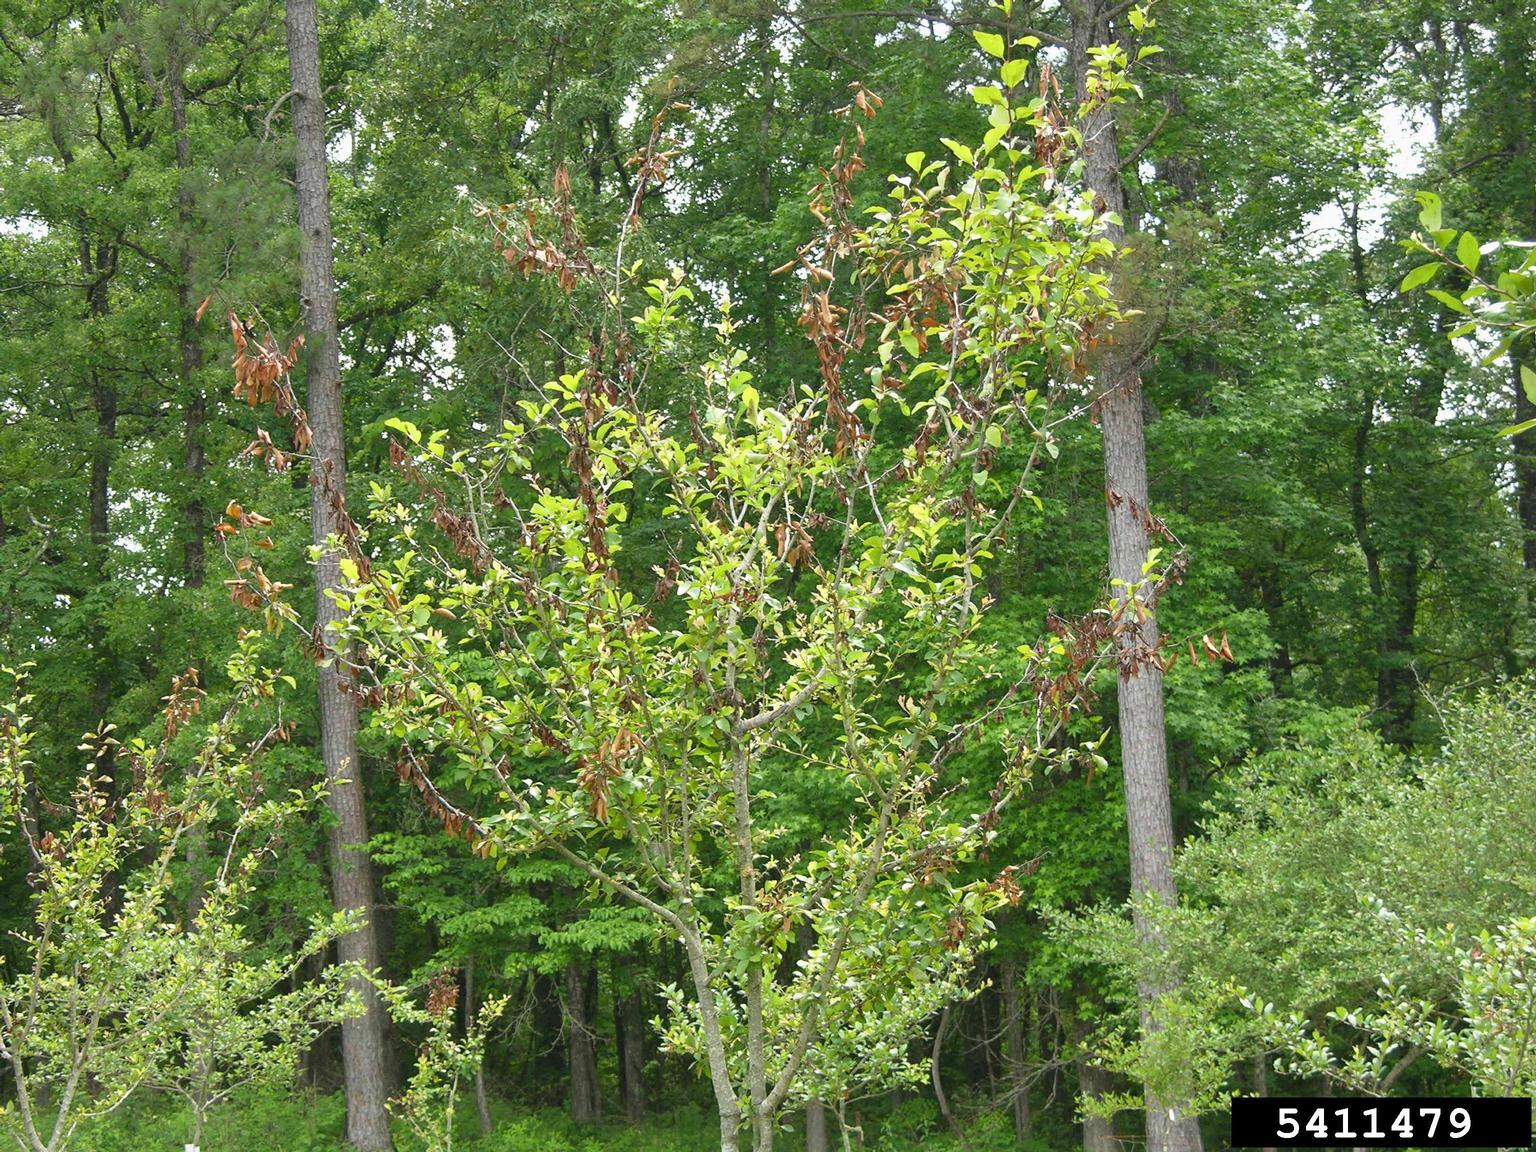 1536691952 mayhaw fire blight control treating a mayhaw with fire blight disease takeseeds com - Mayhaw Fire Blight Control - Treating A Mayhaw With Fire Blight Disease